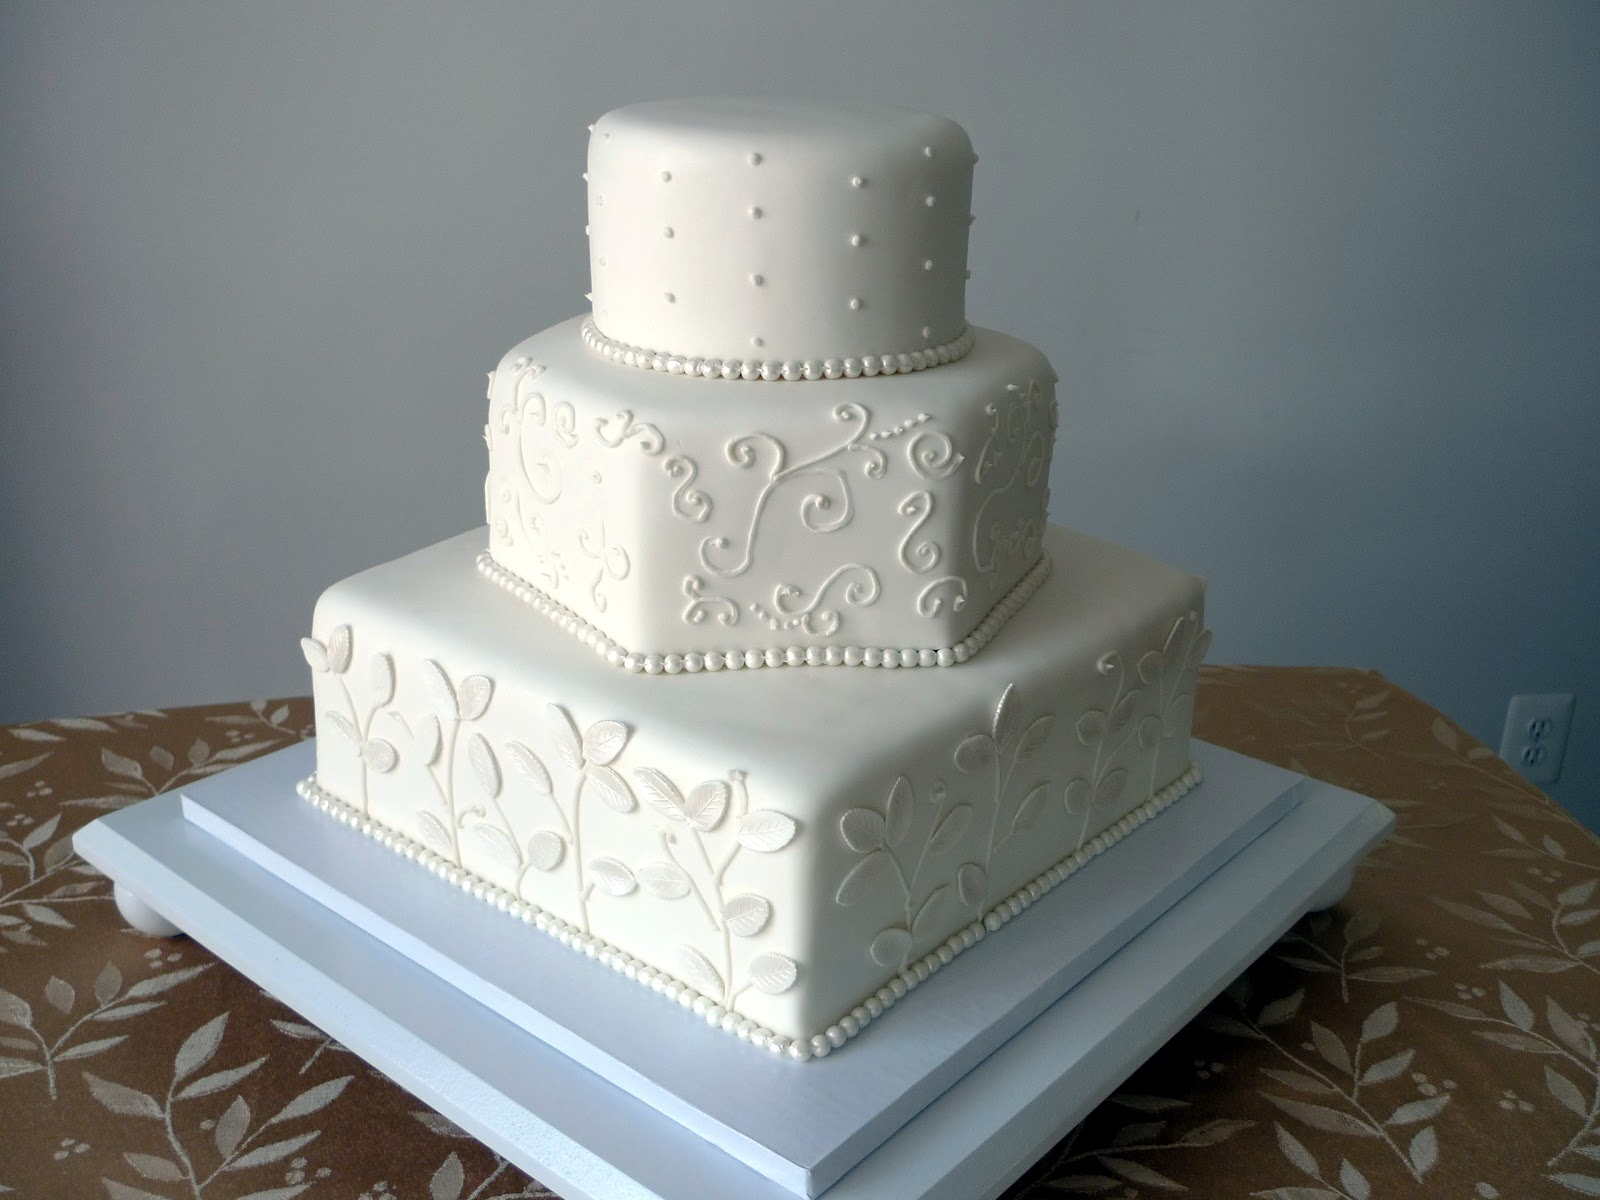 Wedding Cake Design Patterns : Cakebee: Elegant Black & White Wedding Cakes